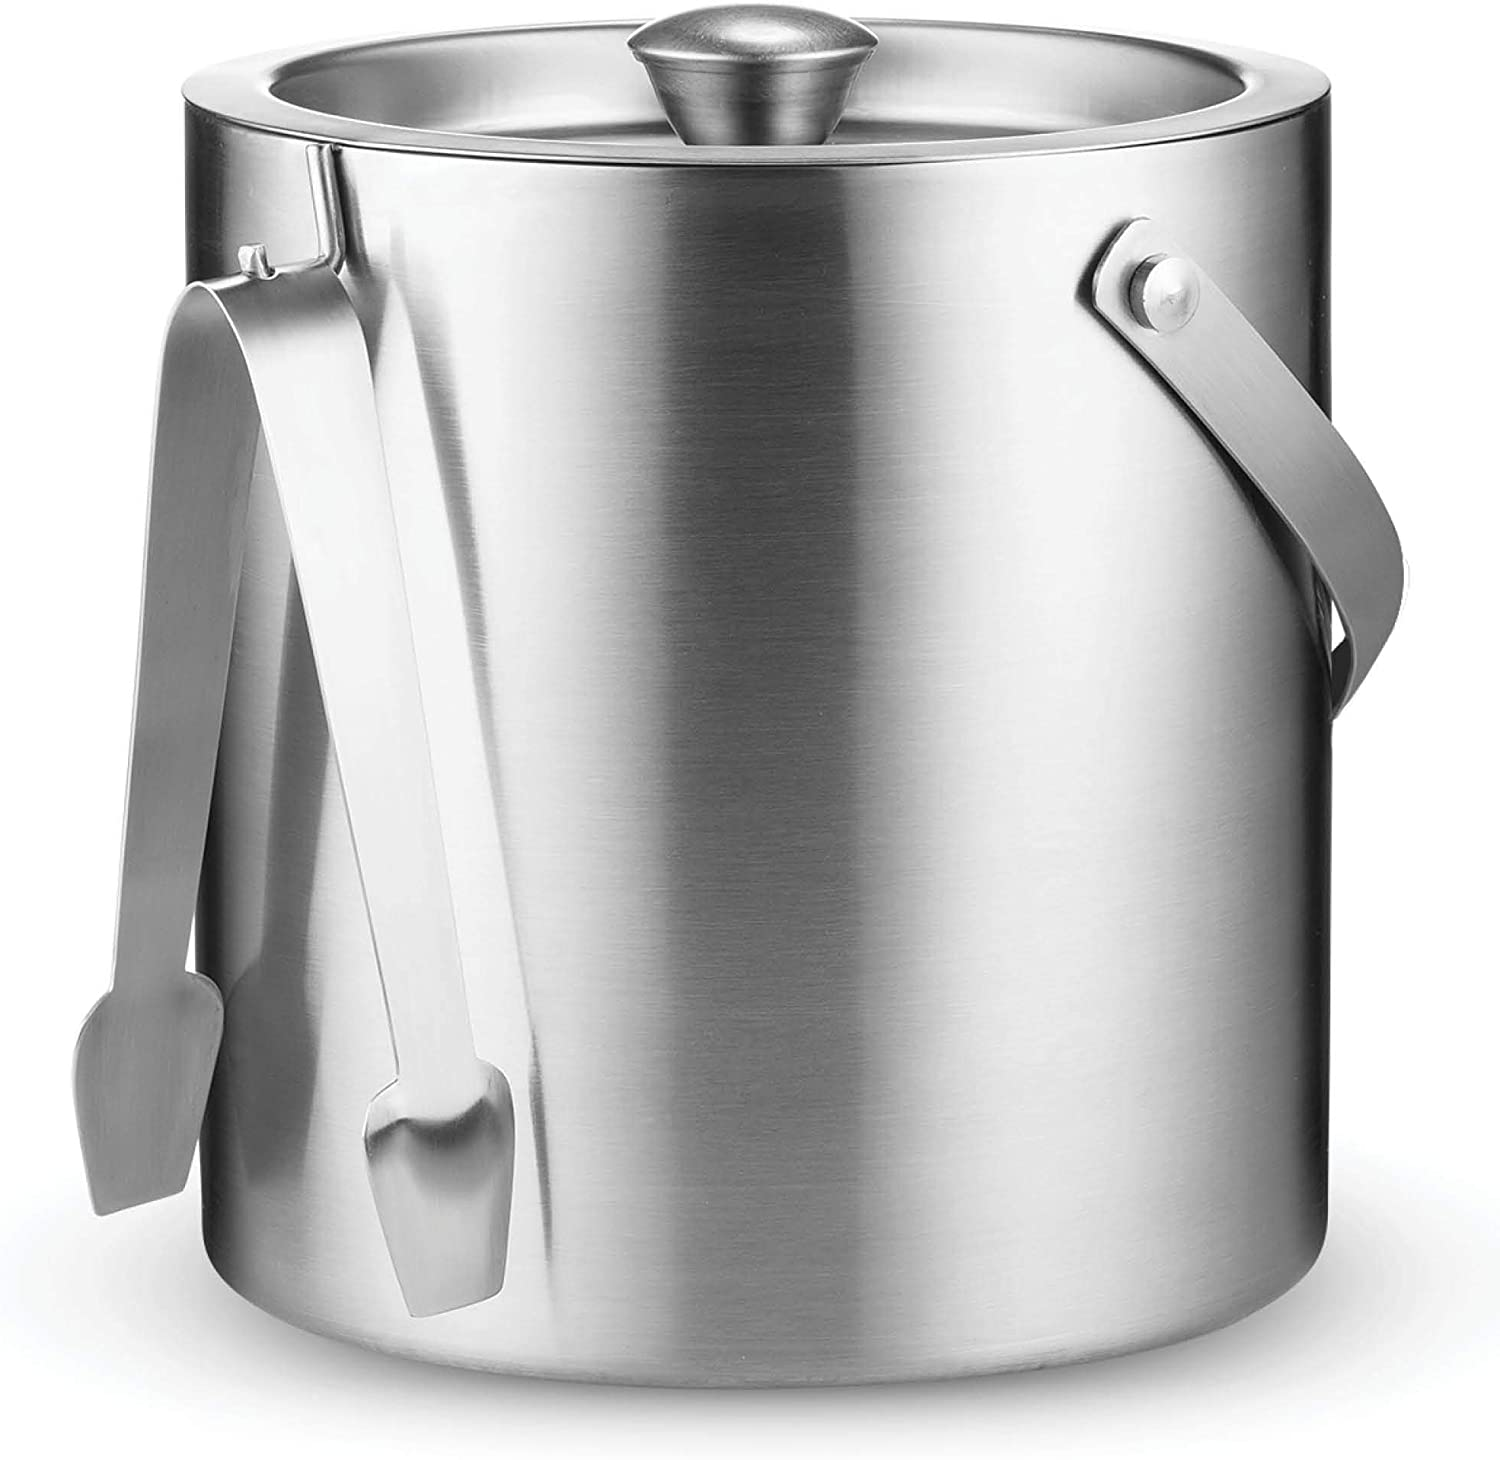 3 Liter Carry leather Handle Wine Bottle Included Strainer Keeps Ice Cold /& Dry Double-Wall Stainless Steel Insulated Ice Bucket With Lid and Ice Tong Great for Home Bar Chilling Beer Champagne